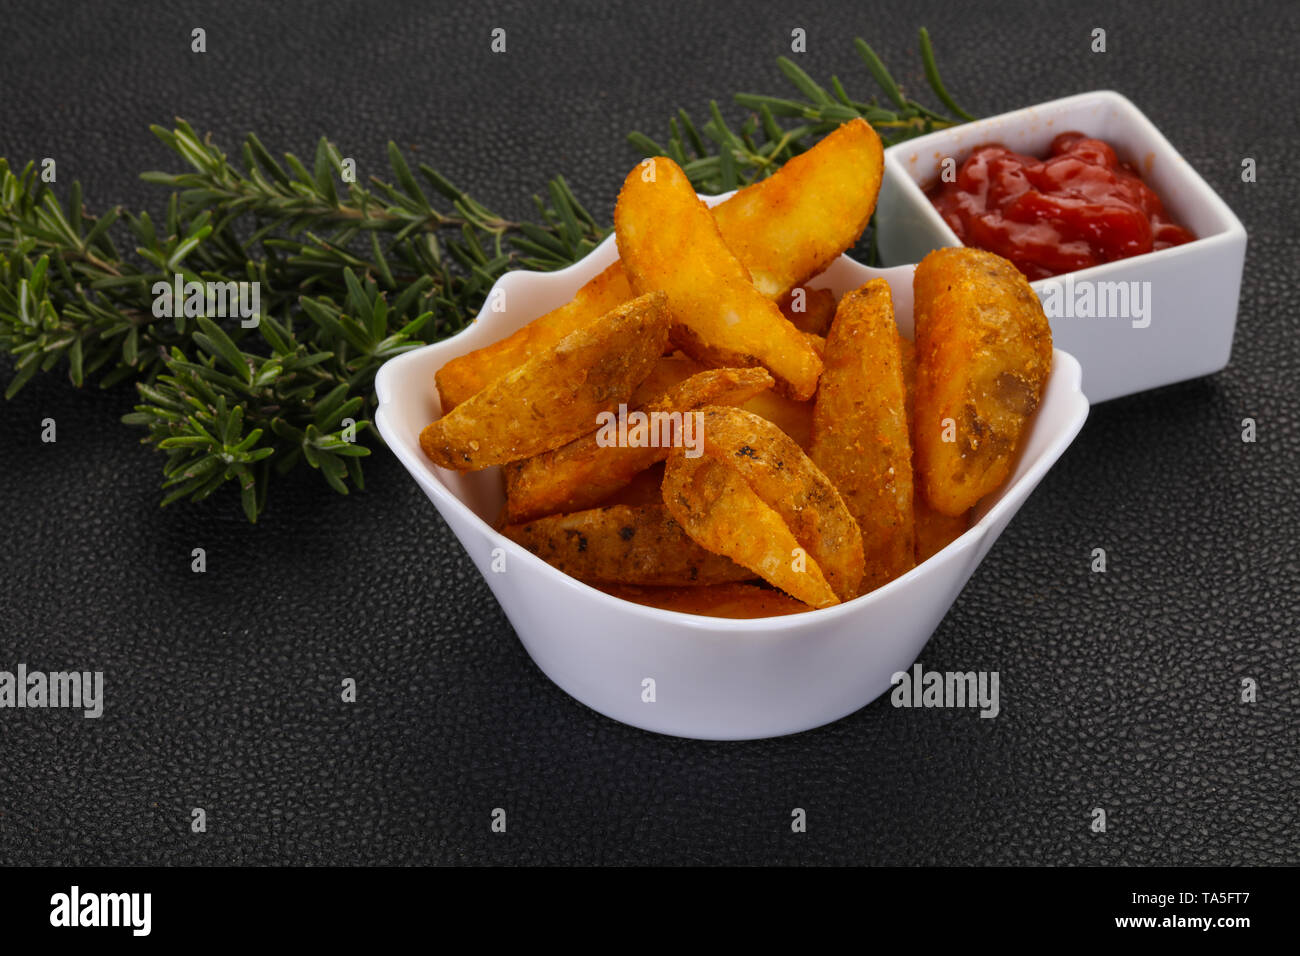 Fried potato slices with rosemary and sauce - Stock Image